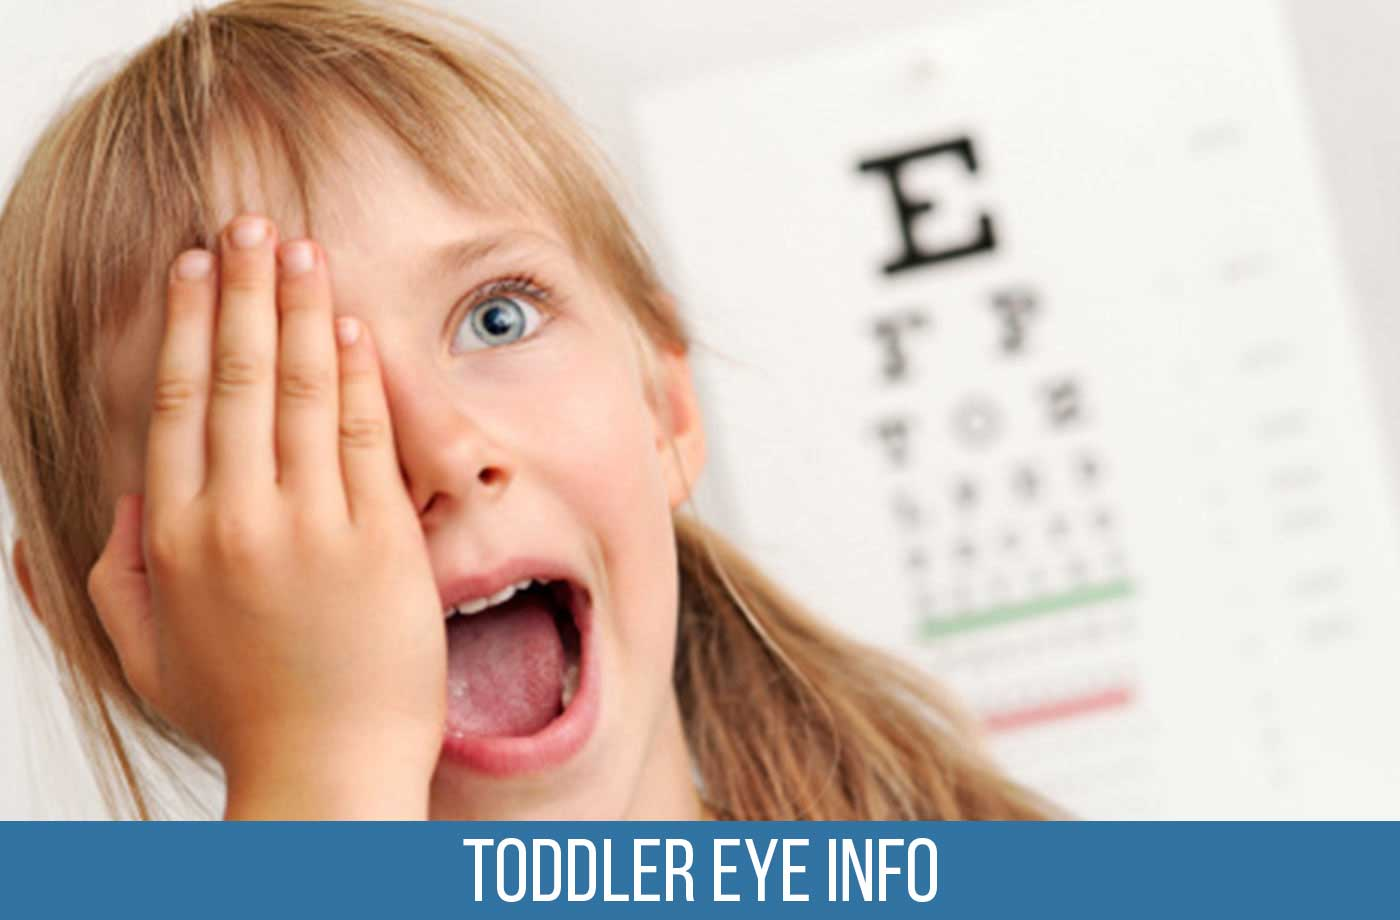 Caring for Toddlers/Kids Eyes Info